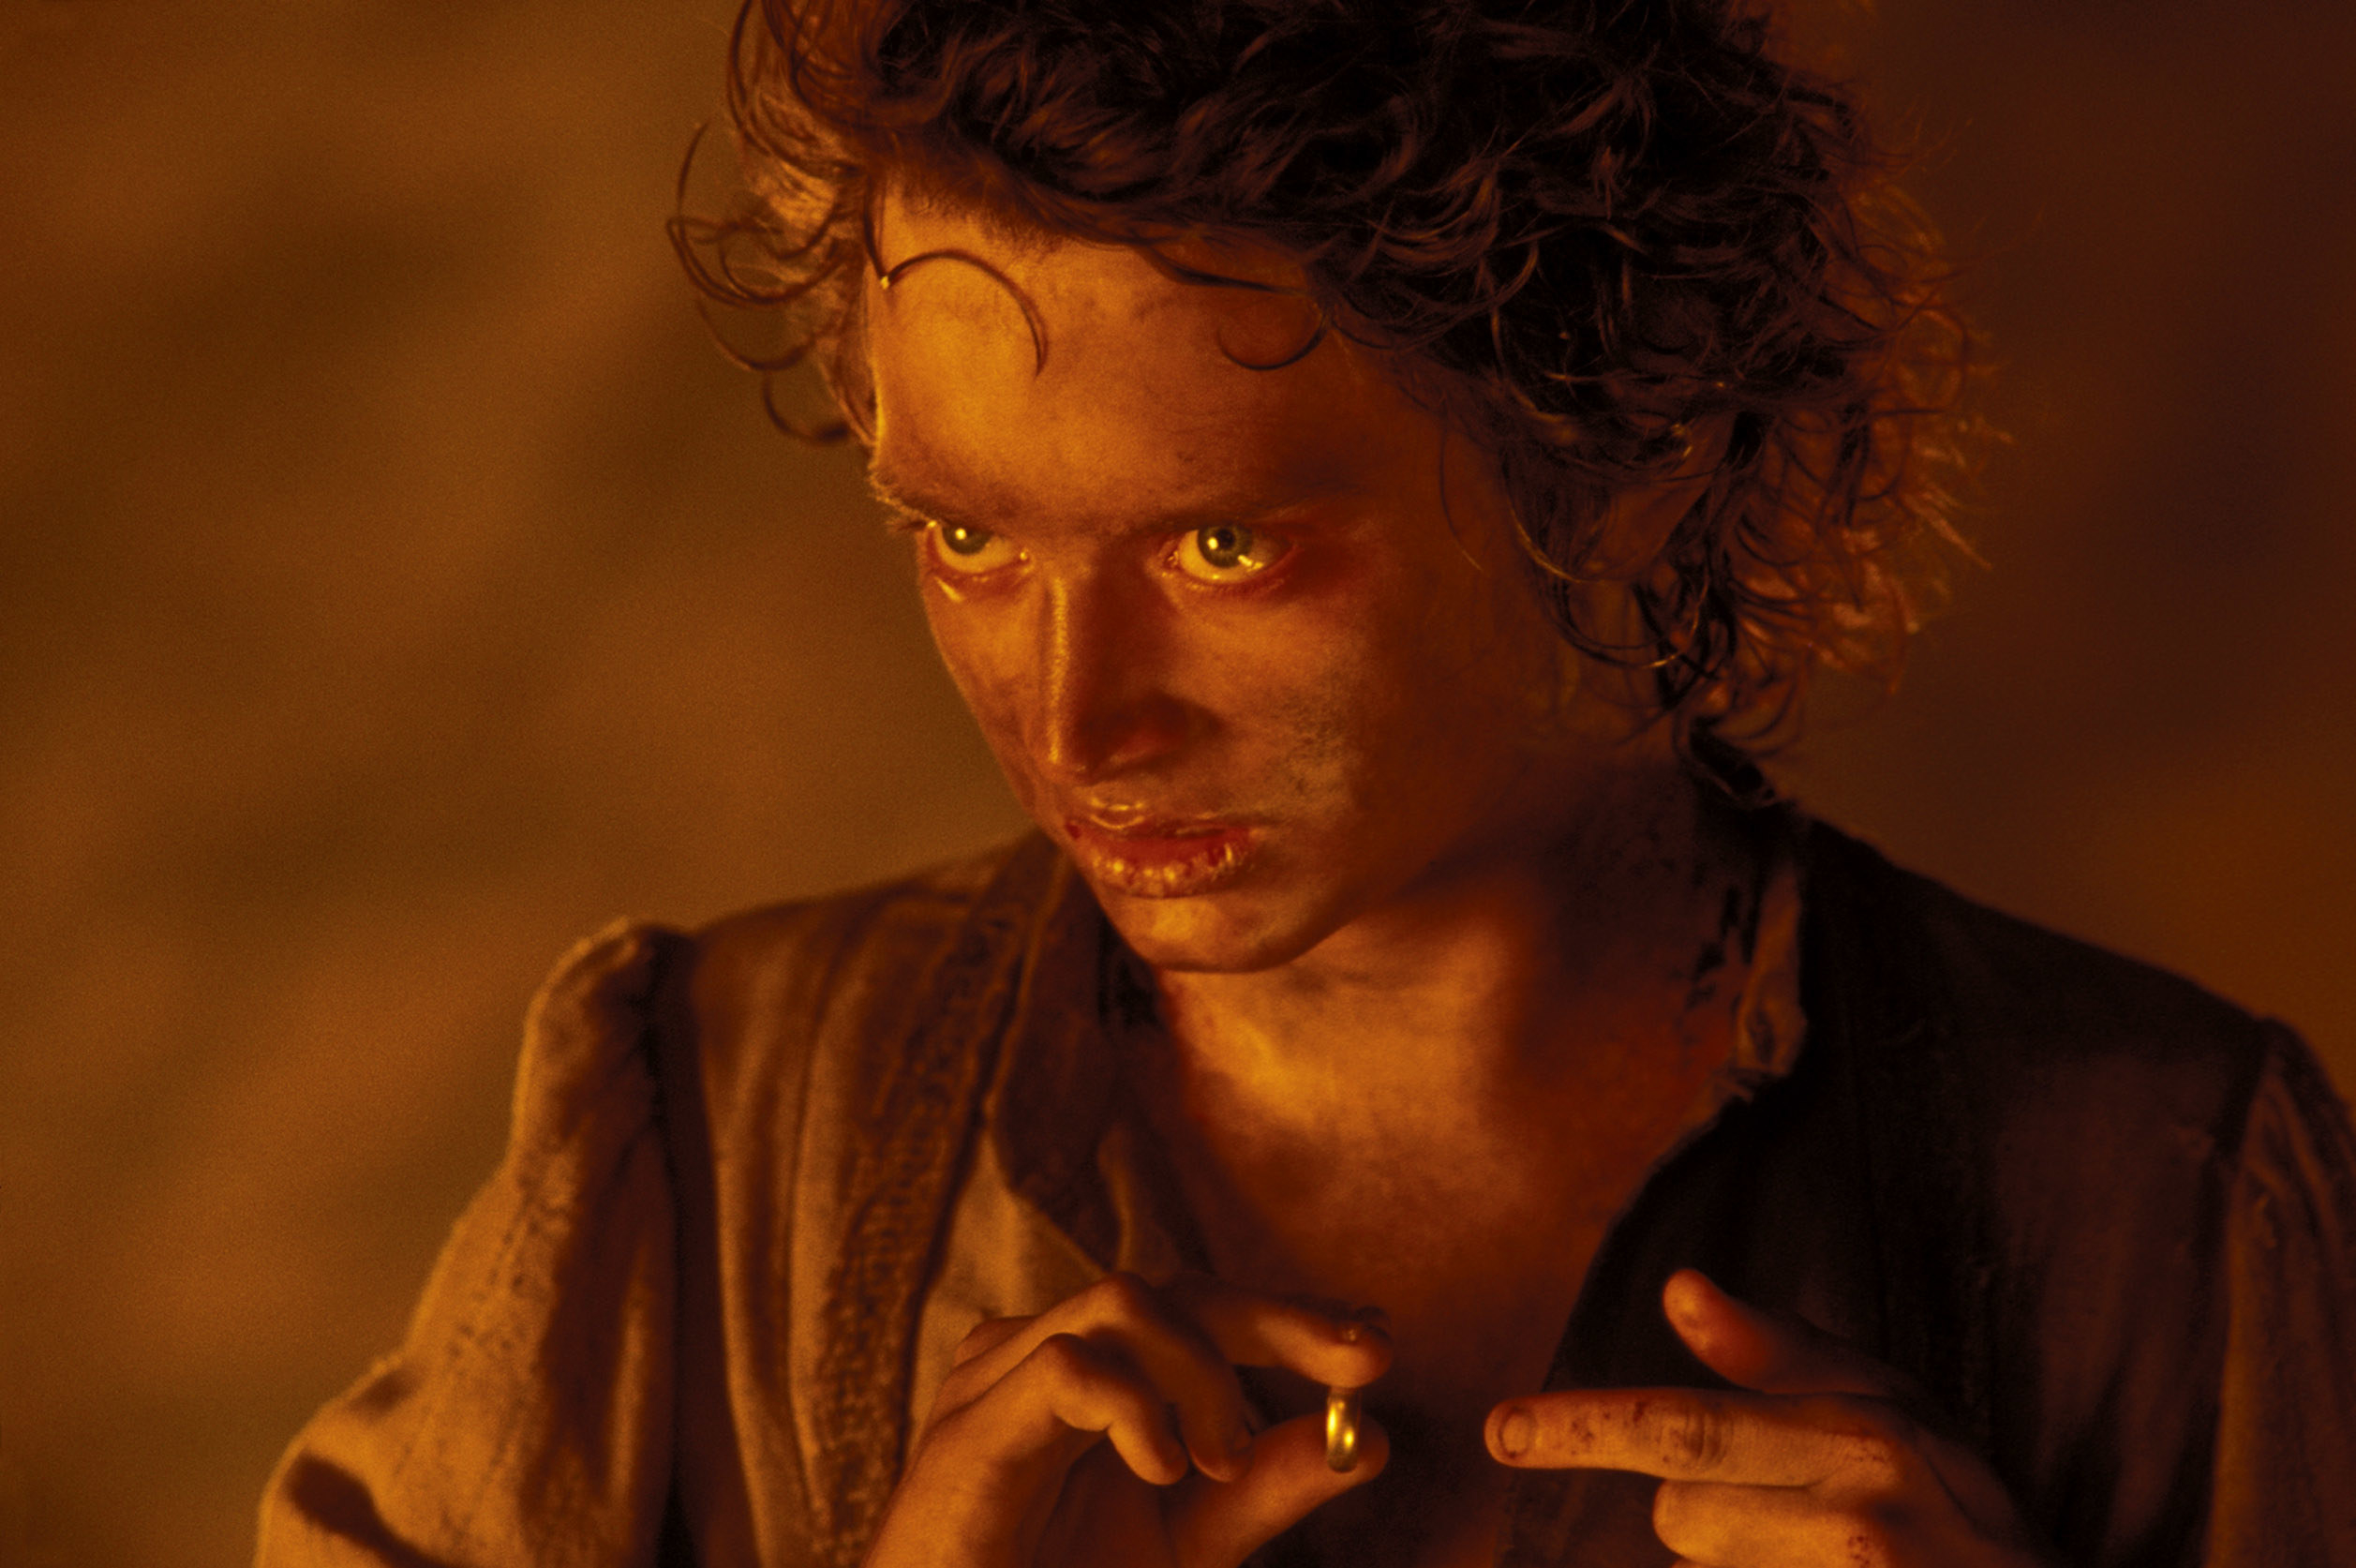 Photo of Frodo about to put on the ring